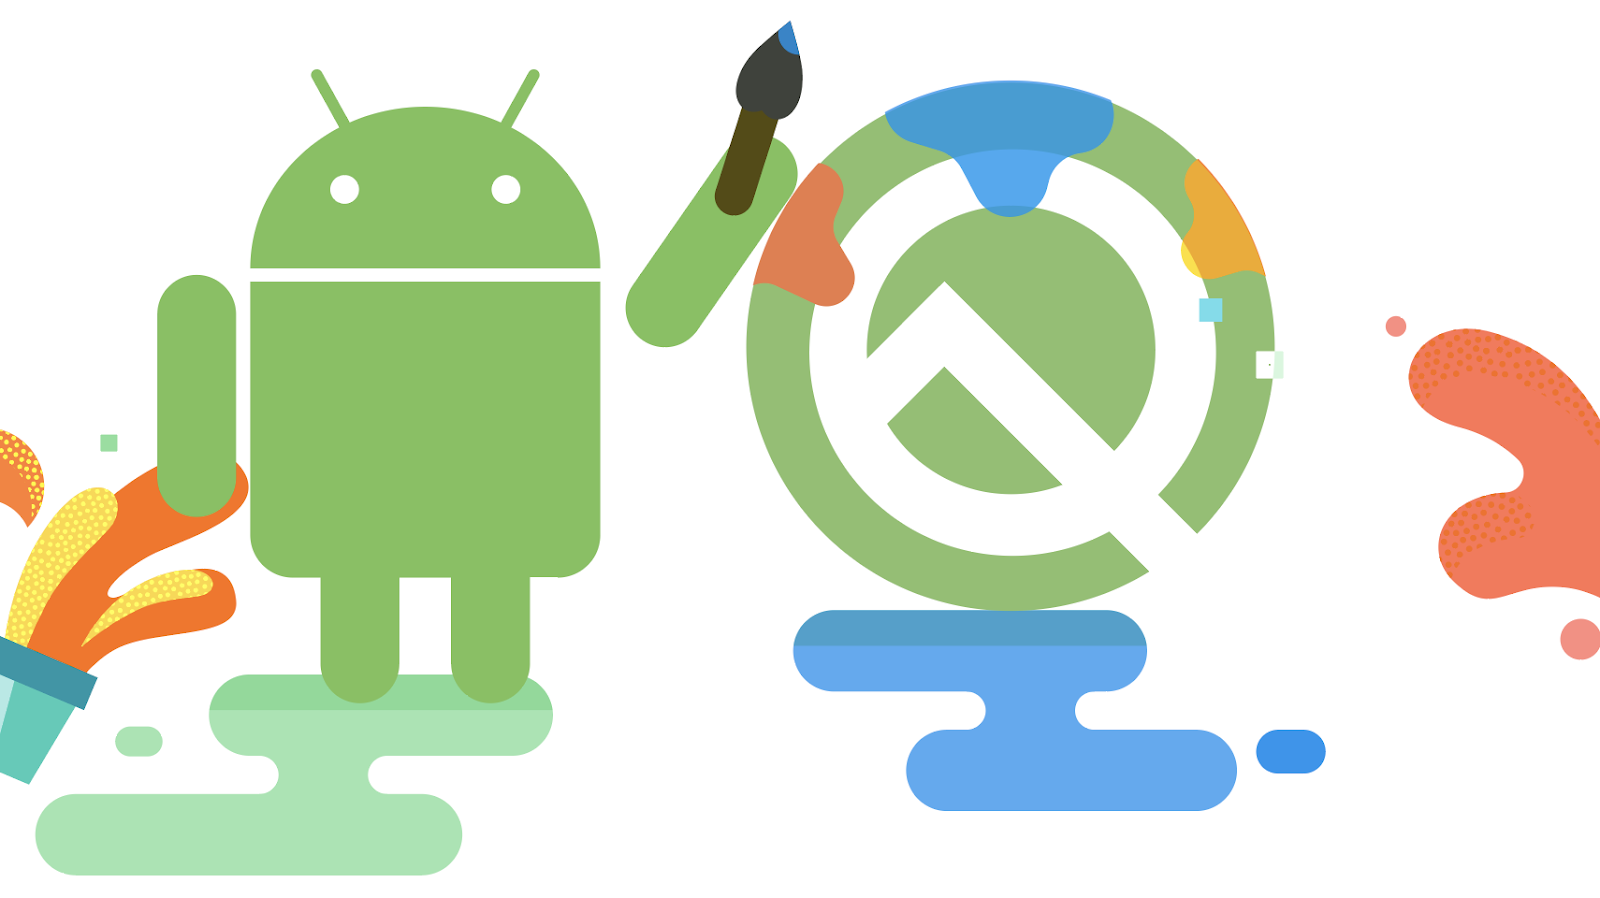 Android Q nerfs gesture navigation if you use a third-party launcher